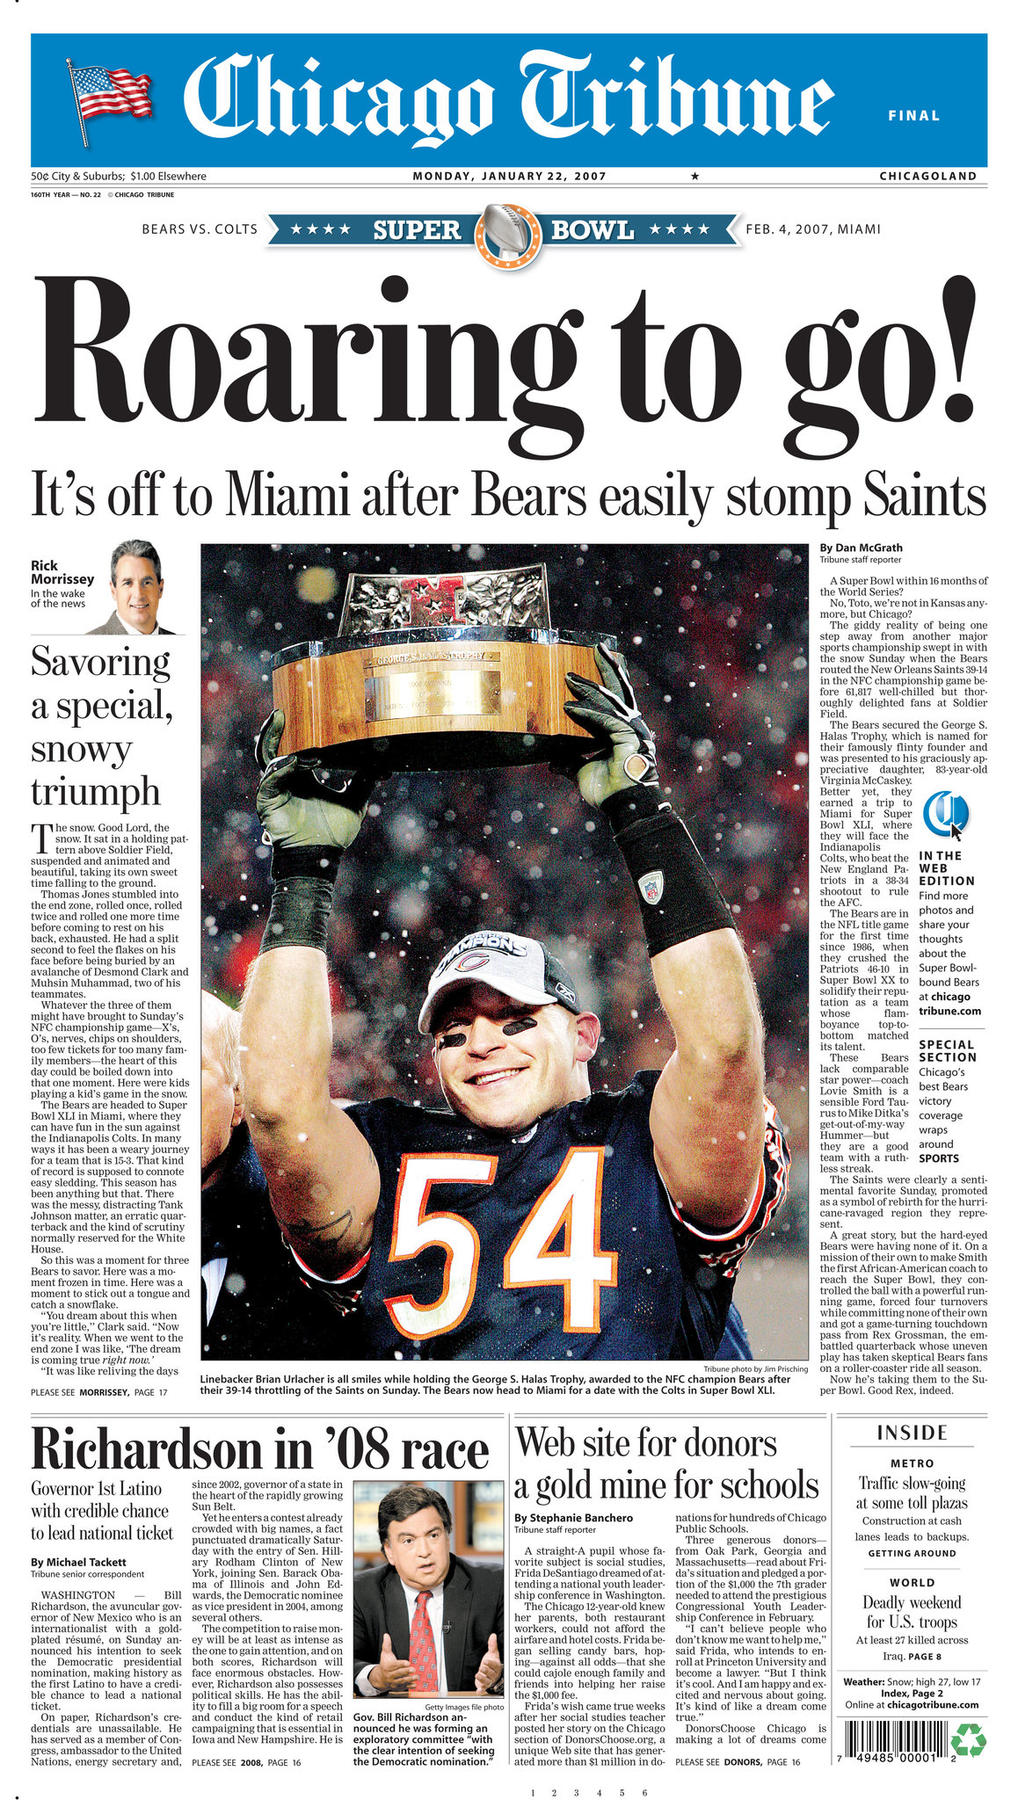 Jan. 22, 2007 Chicago Tribune Bears advance to second Super BowlJan. 21, 2007: Bears advance to second Super Bowl